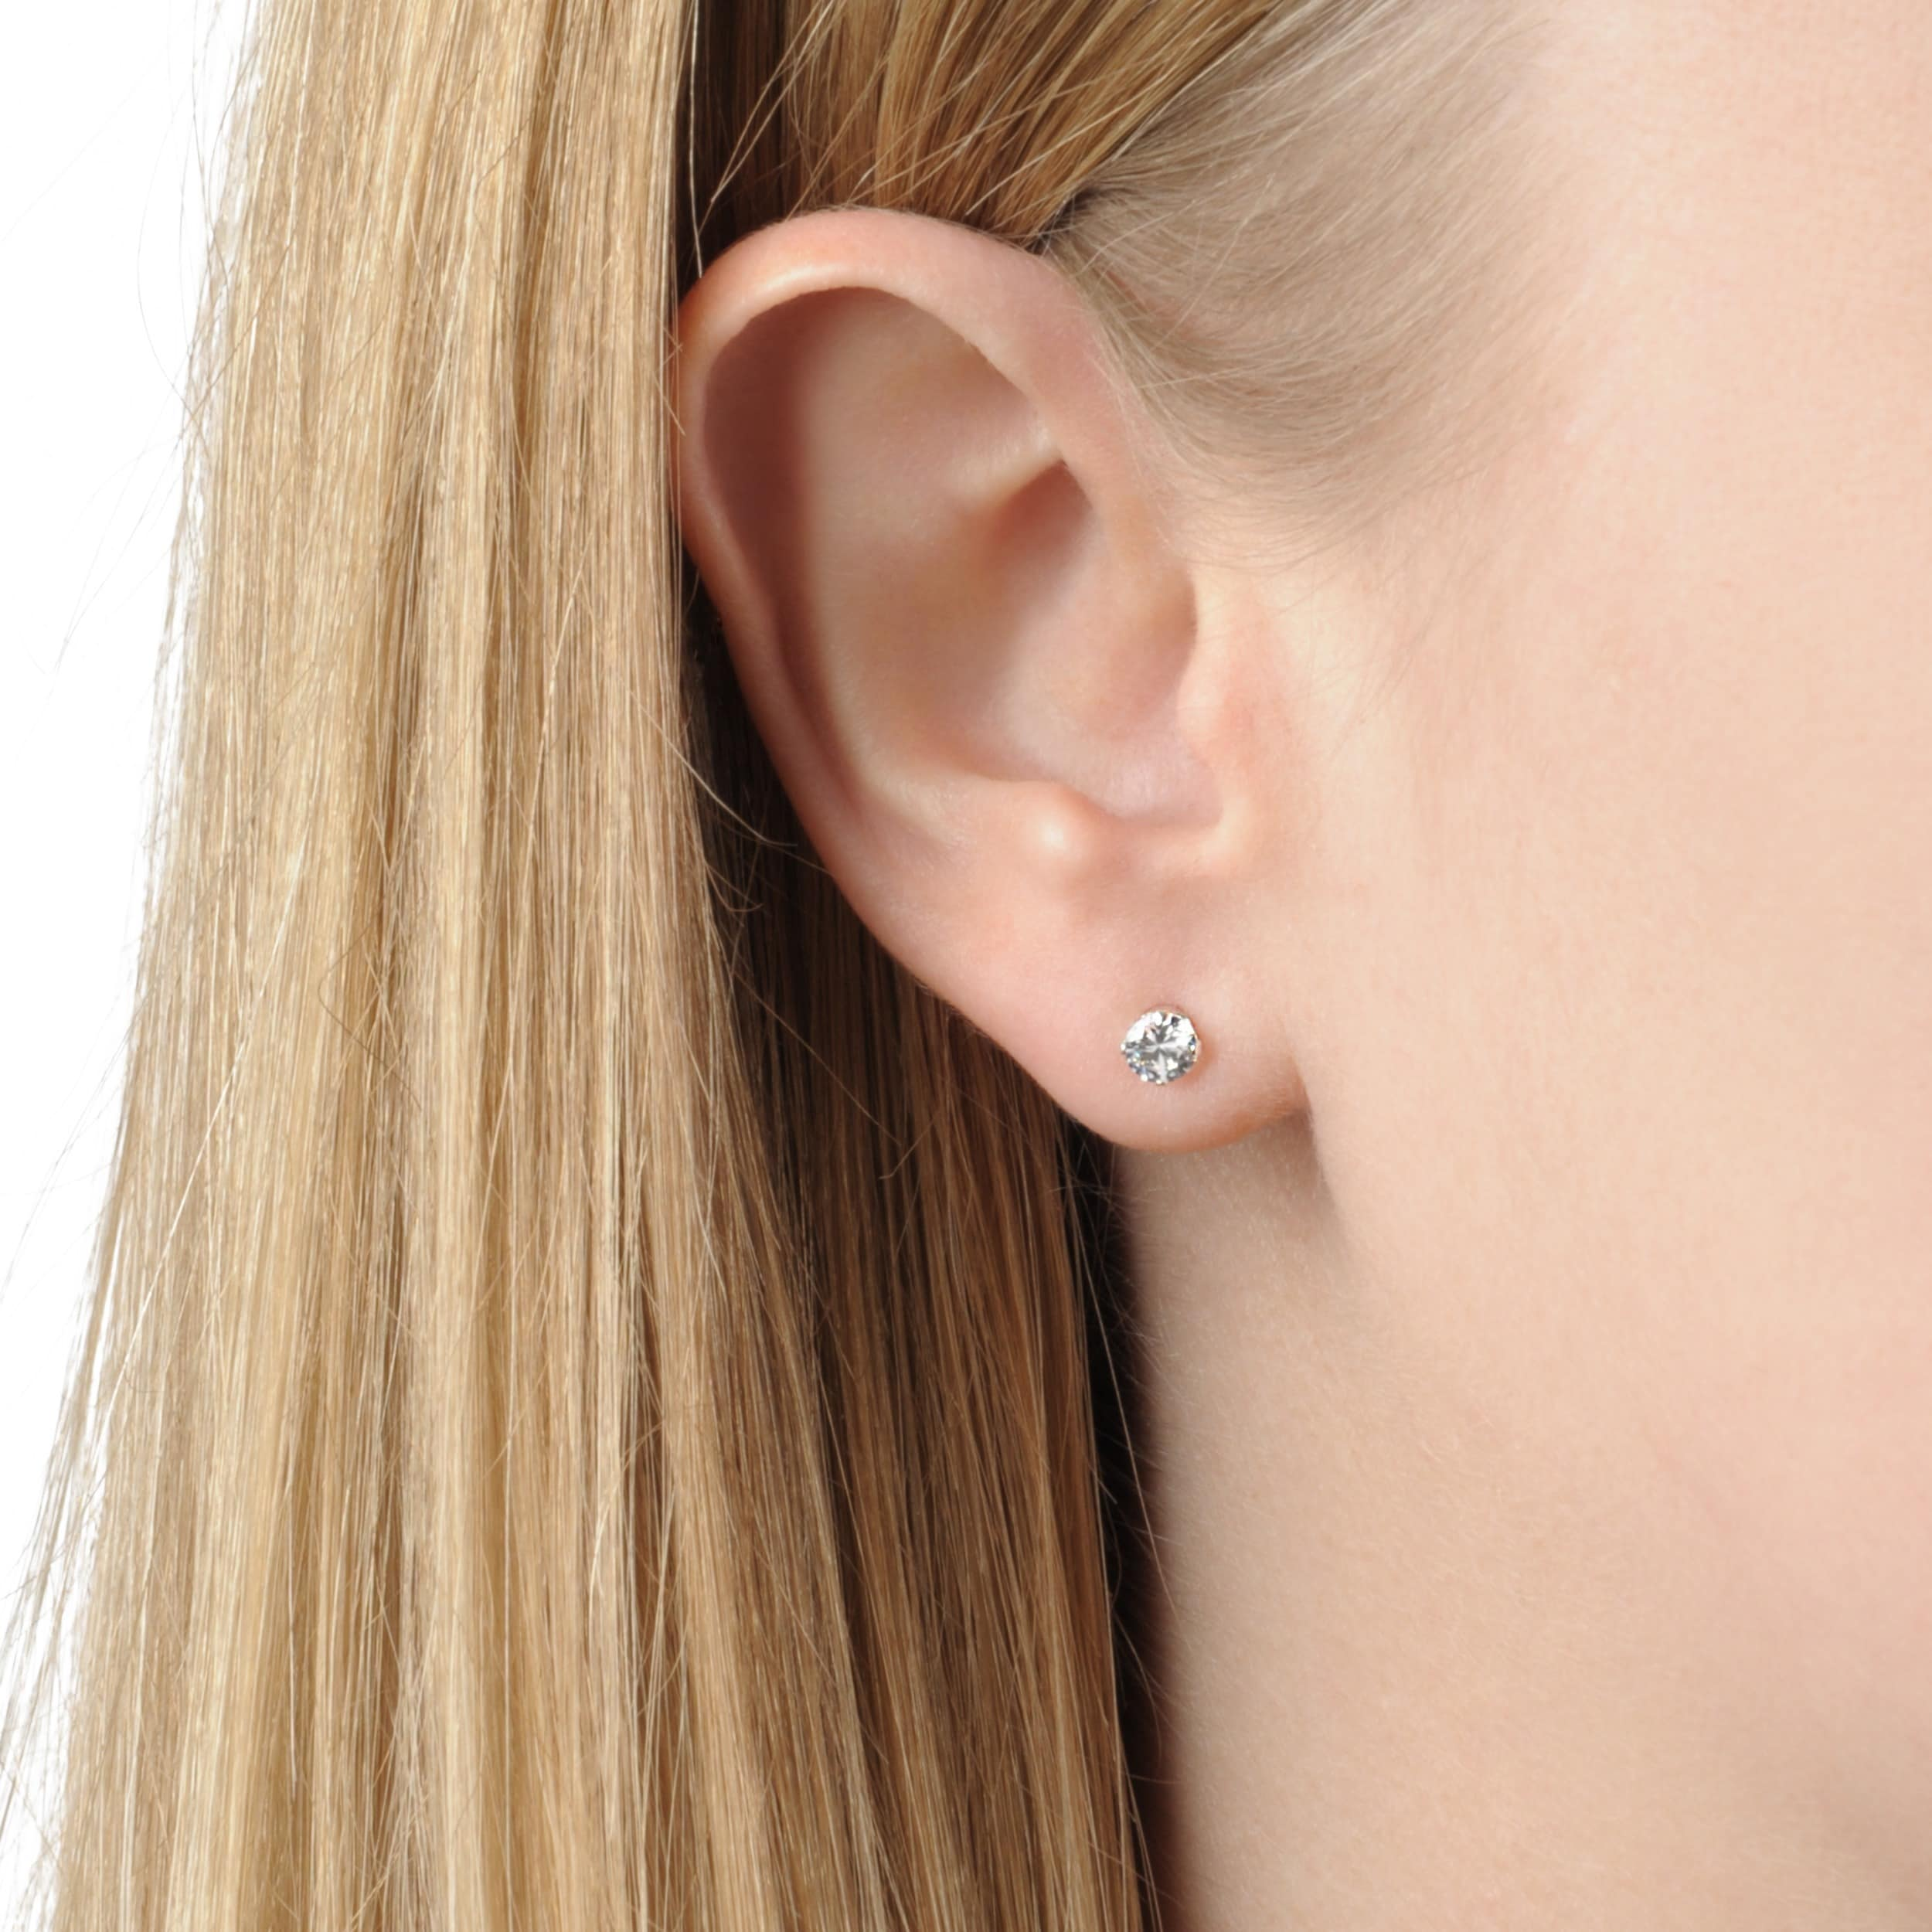 mm pin pinterest piercing pearl stud cartilage